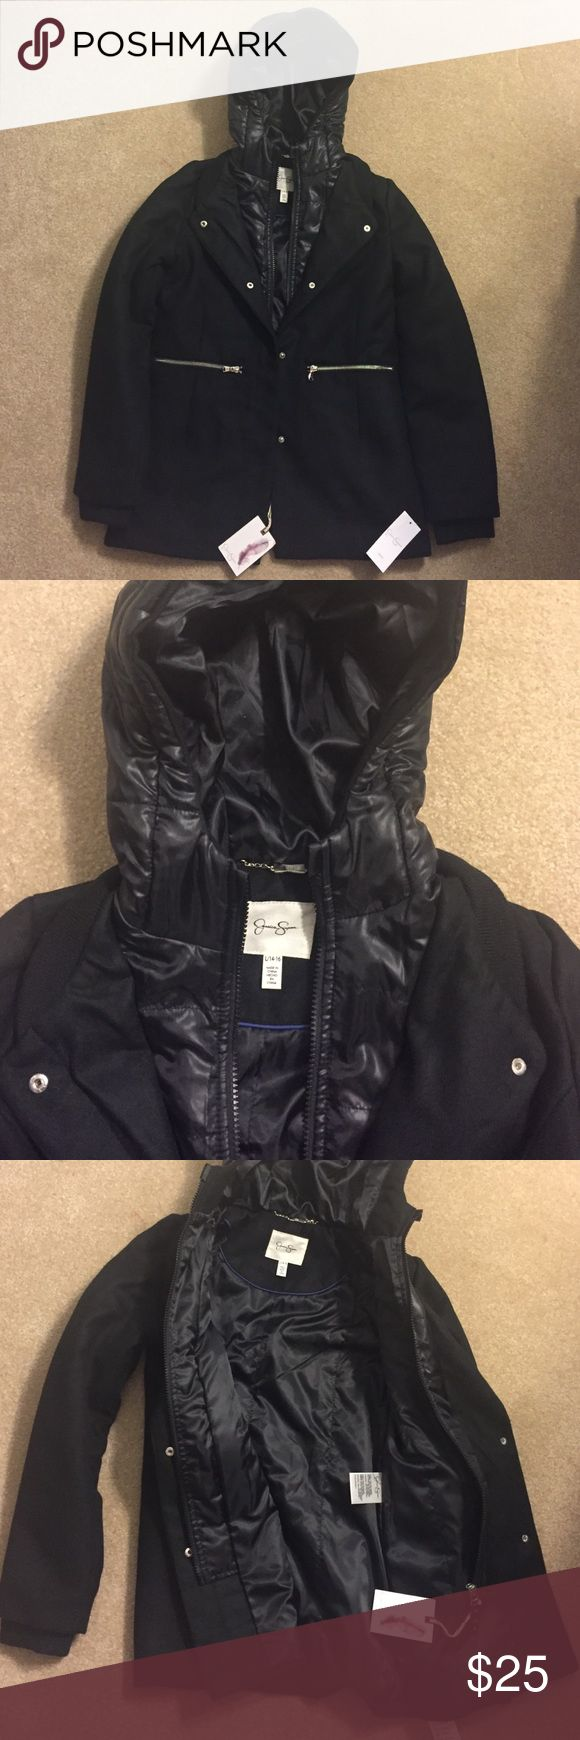 Jessica Simpson Girls 14/16 Winter Coat ❄️ Compact but very warm black coat with hood. Jessica Simpson. Jessica Simpson Jackets & Coats